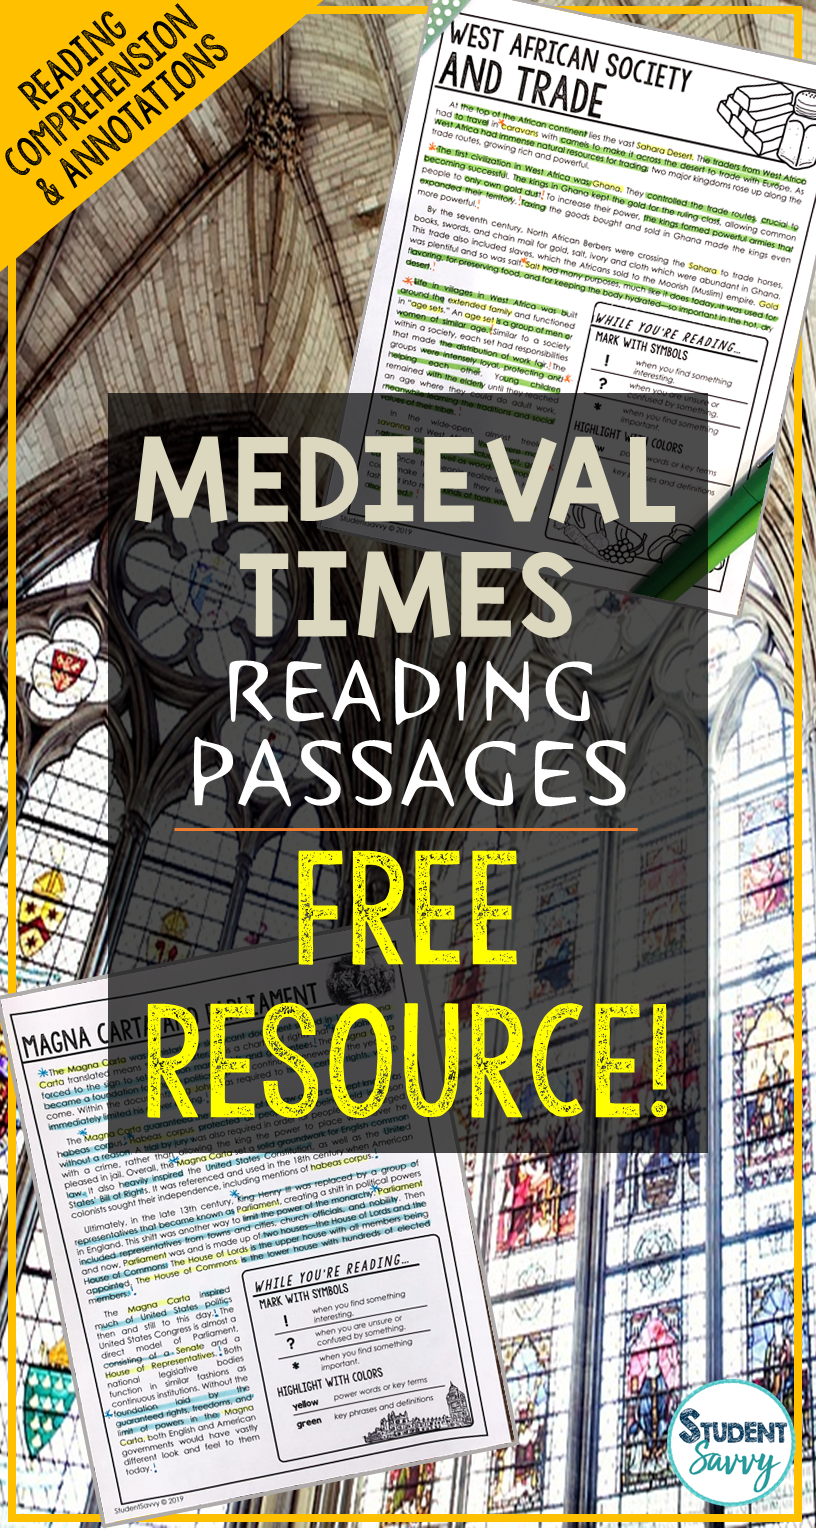 Predownload: Medieval Times Middle Ages Reading Passages Free Resource Reading Passages Reading Comprehension Questions Reading Comprehension Passages [ 1536 x 816 Pixel ]